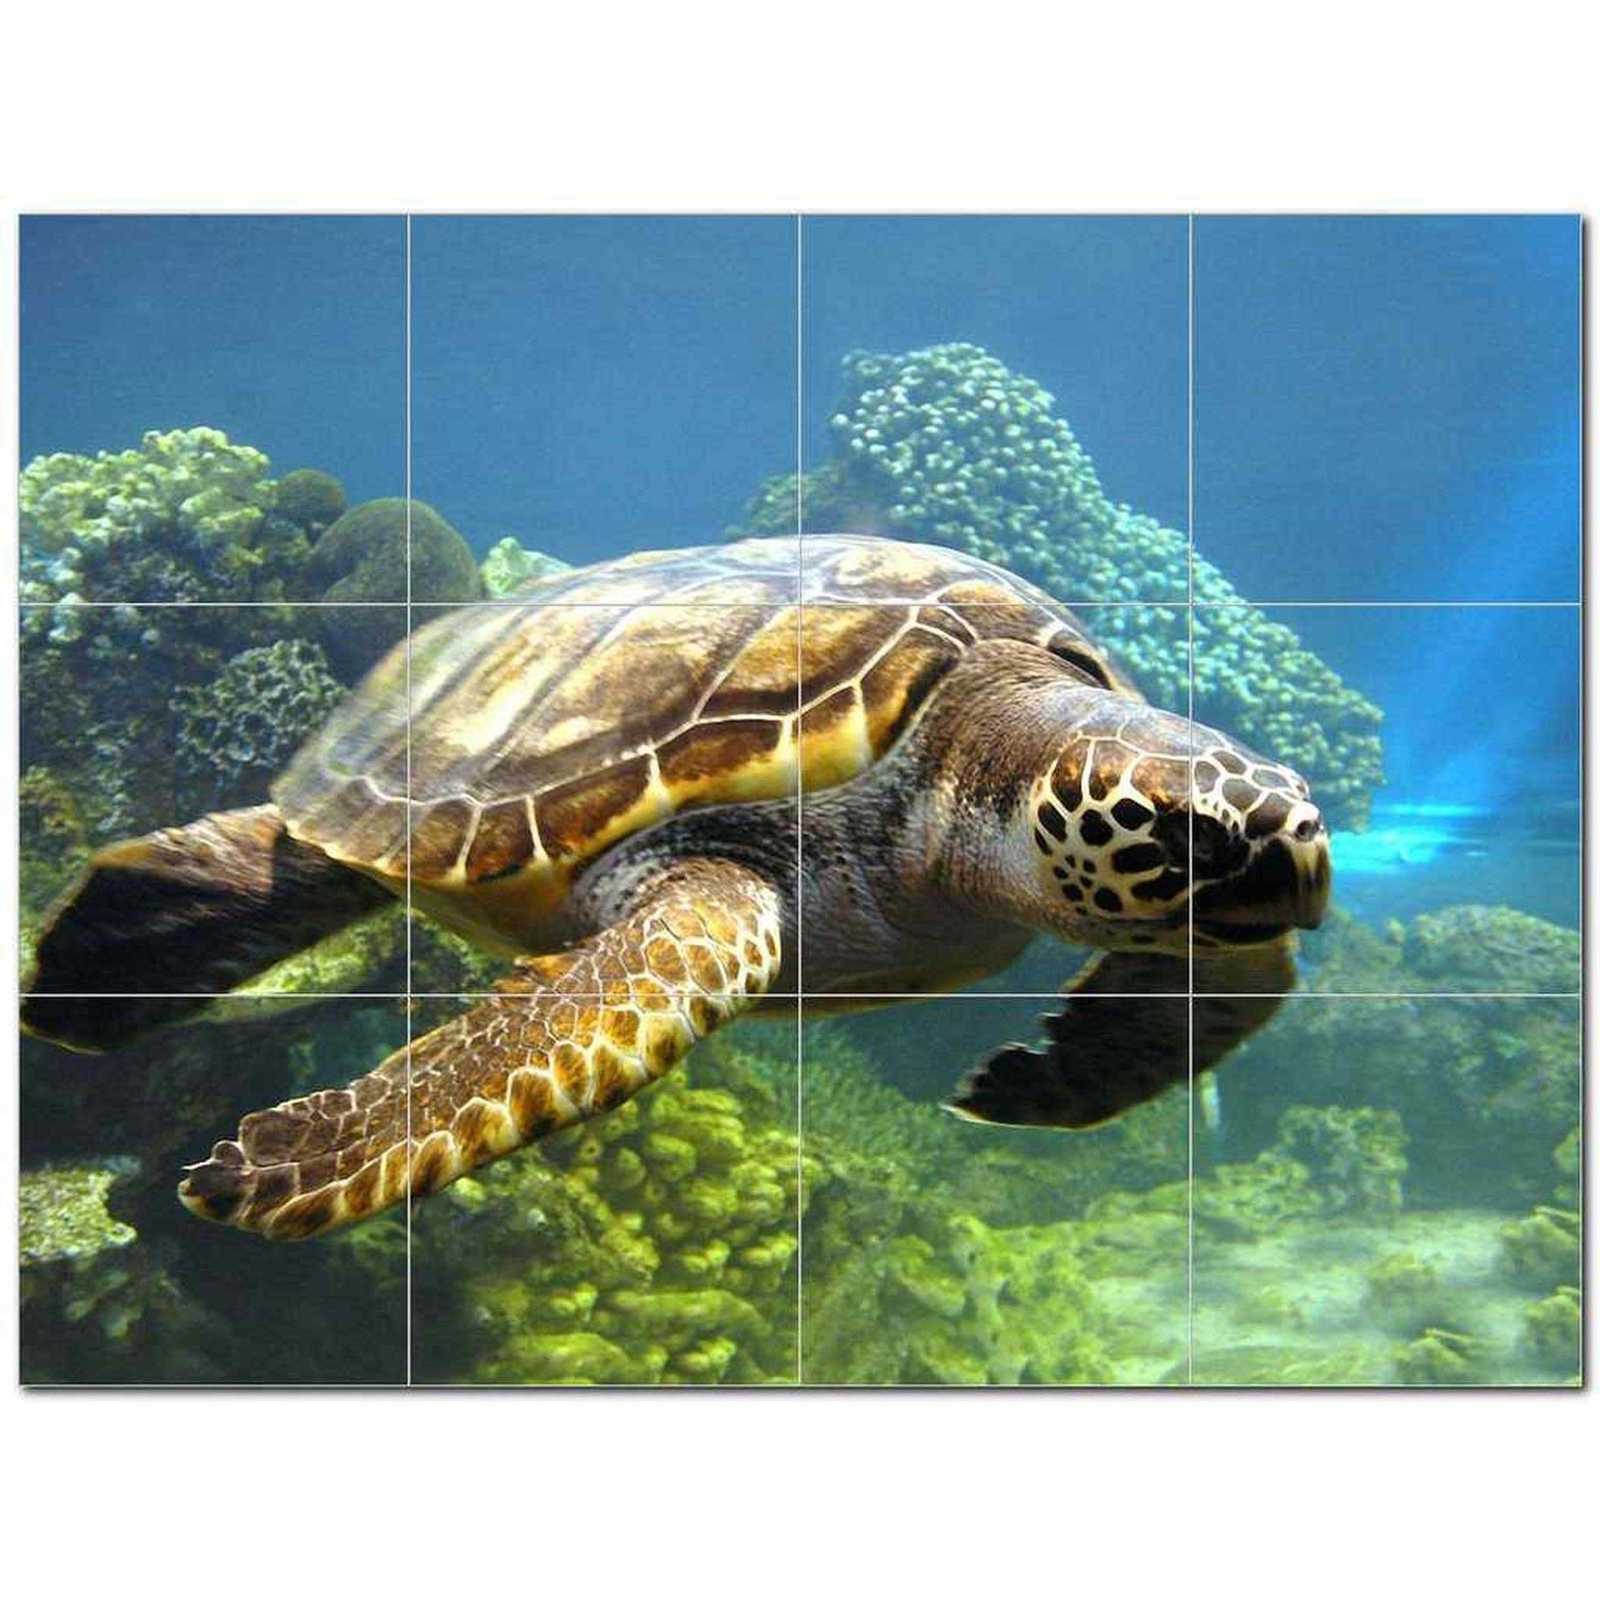 Primary image for Turtle Photo Ceramic Tile Mural Kitchen Backsplash Bathroom Shower BAZ406068